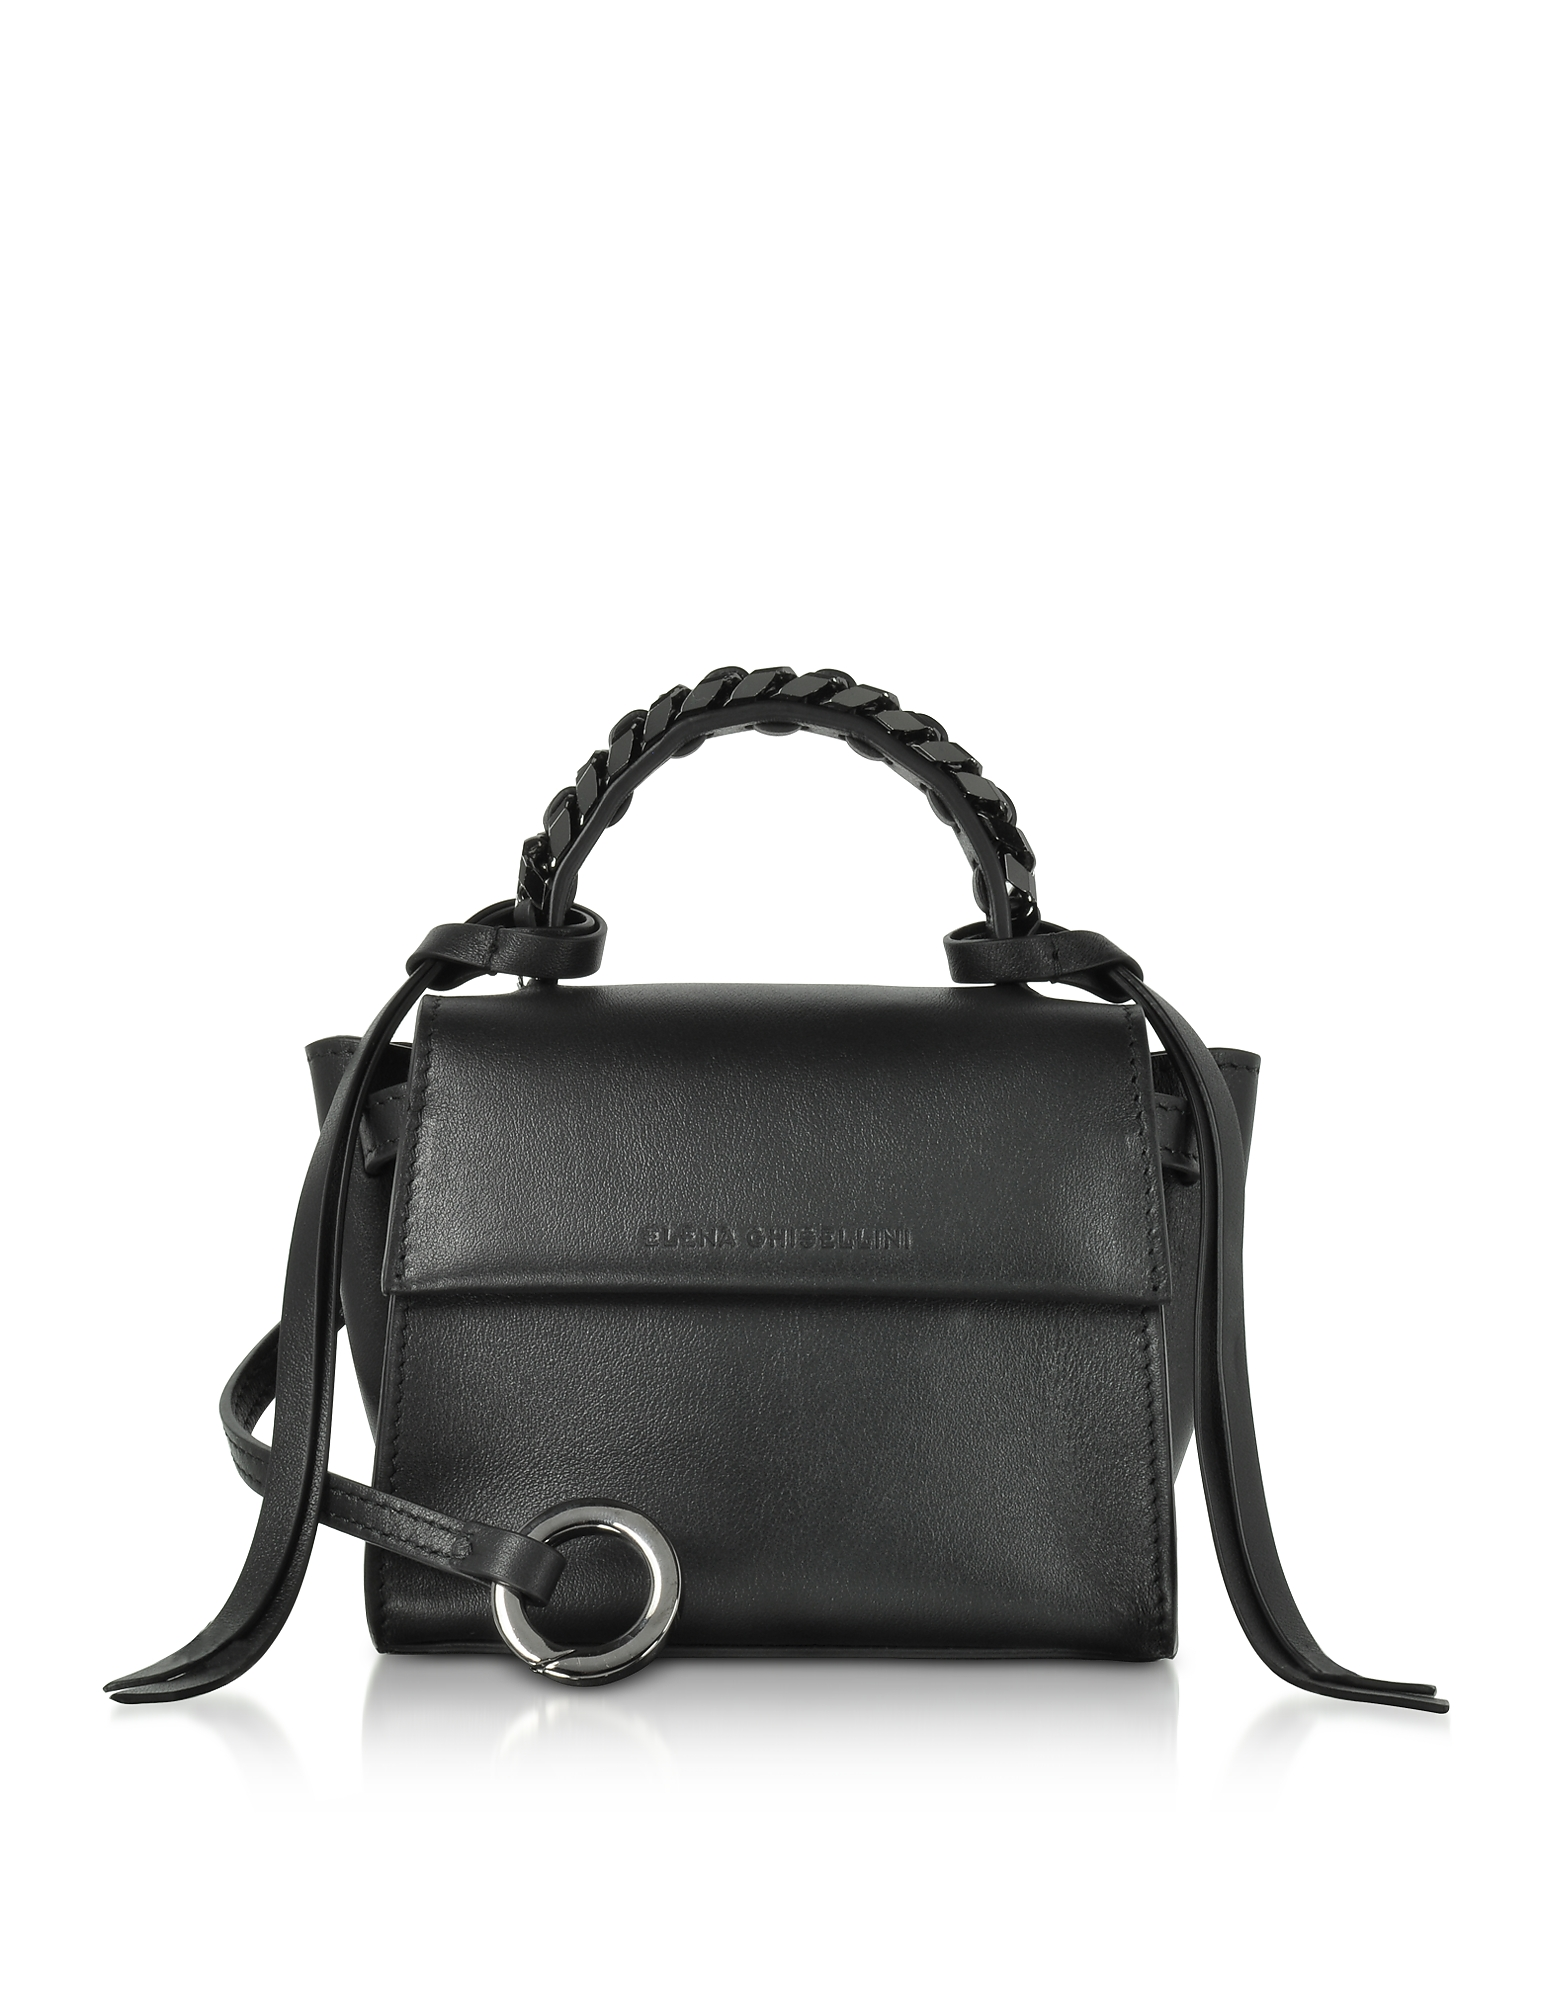 Elena Ghisellini Handbags, Black Leather Micro Angel Top Handle Satchel Bag